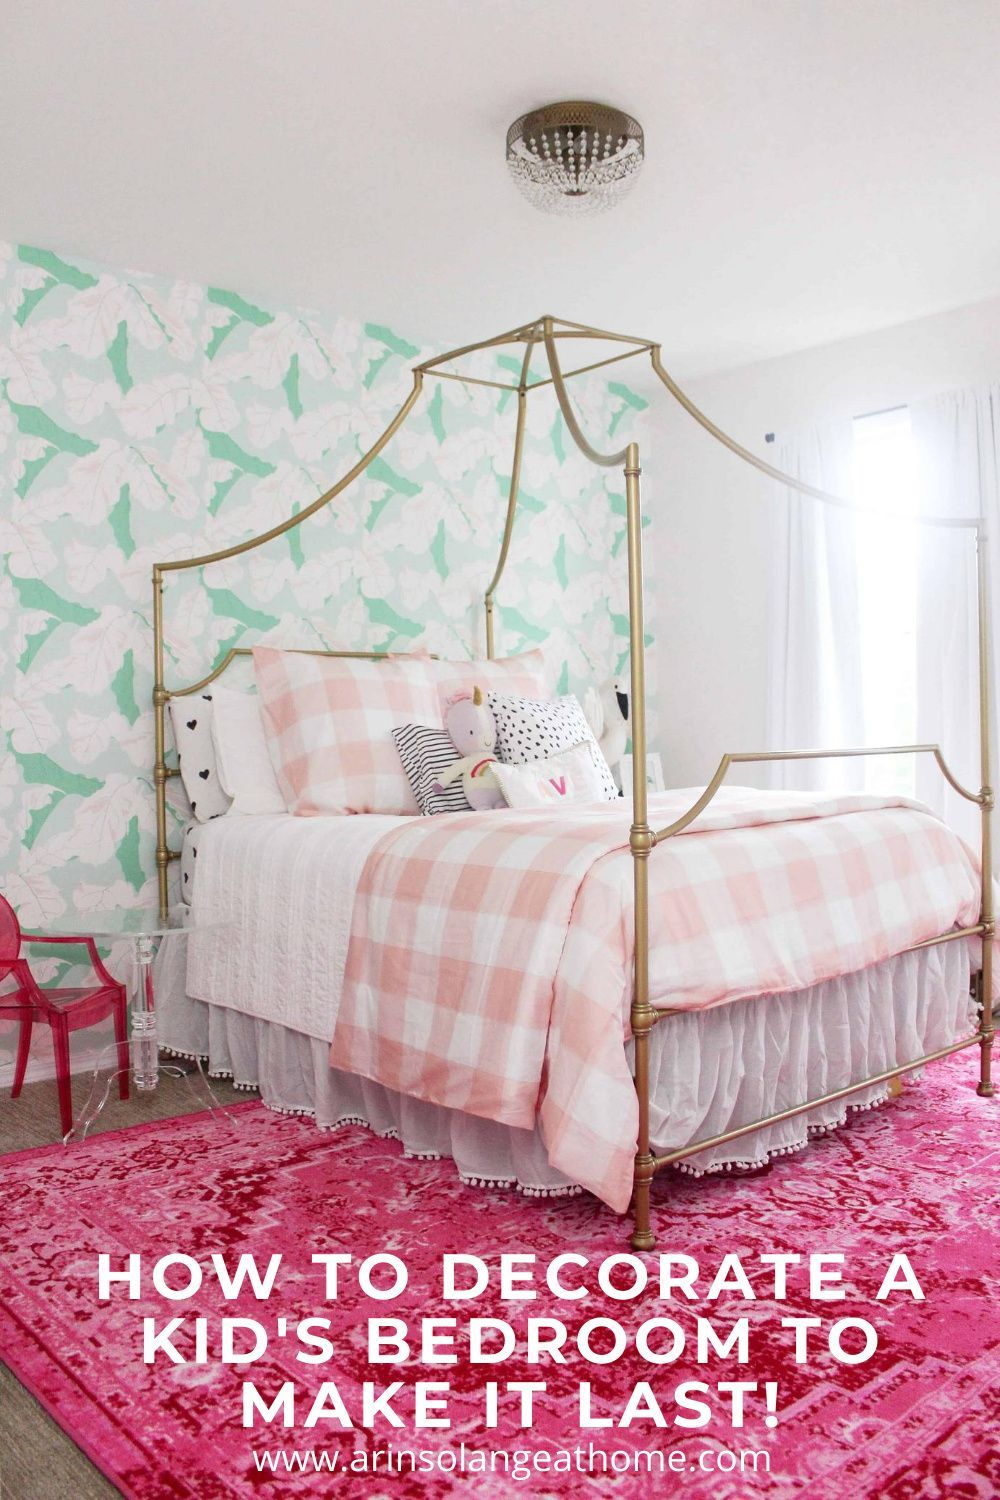 How to decorate kids bedroom and nursery to make it last! Tips and tricks for what to spend money on and what to let go.